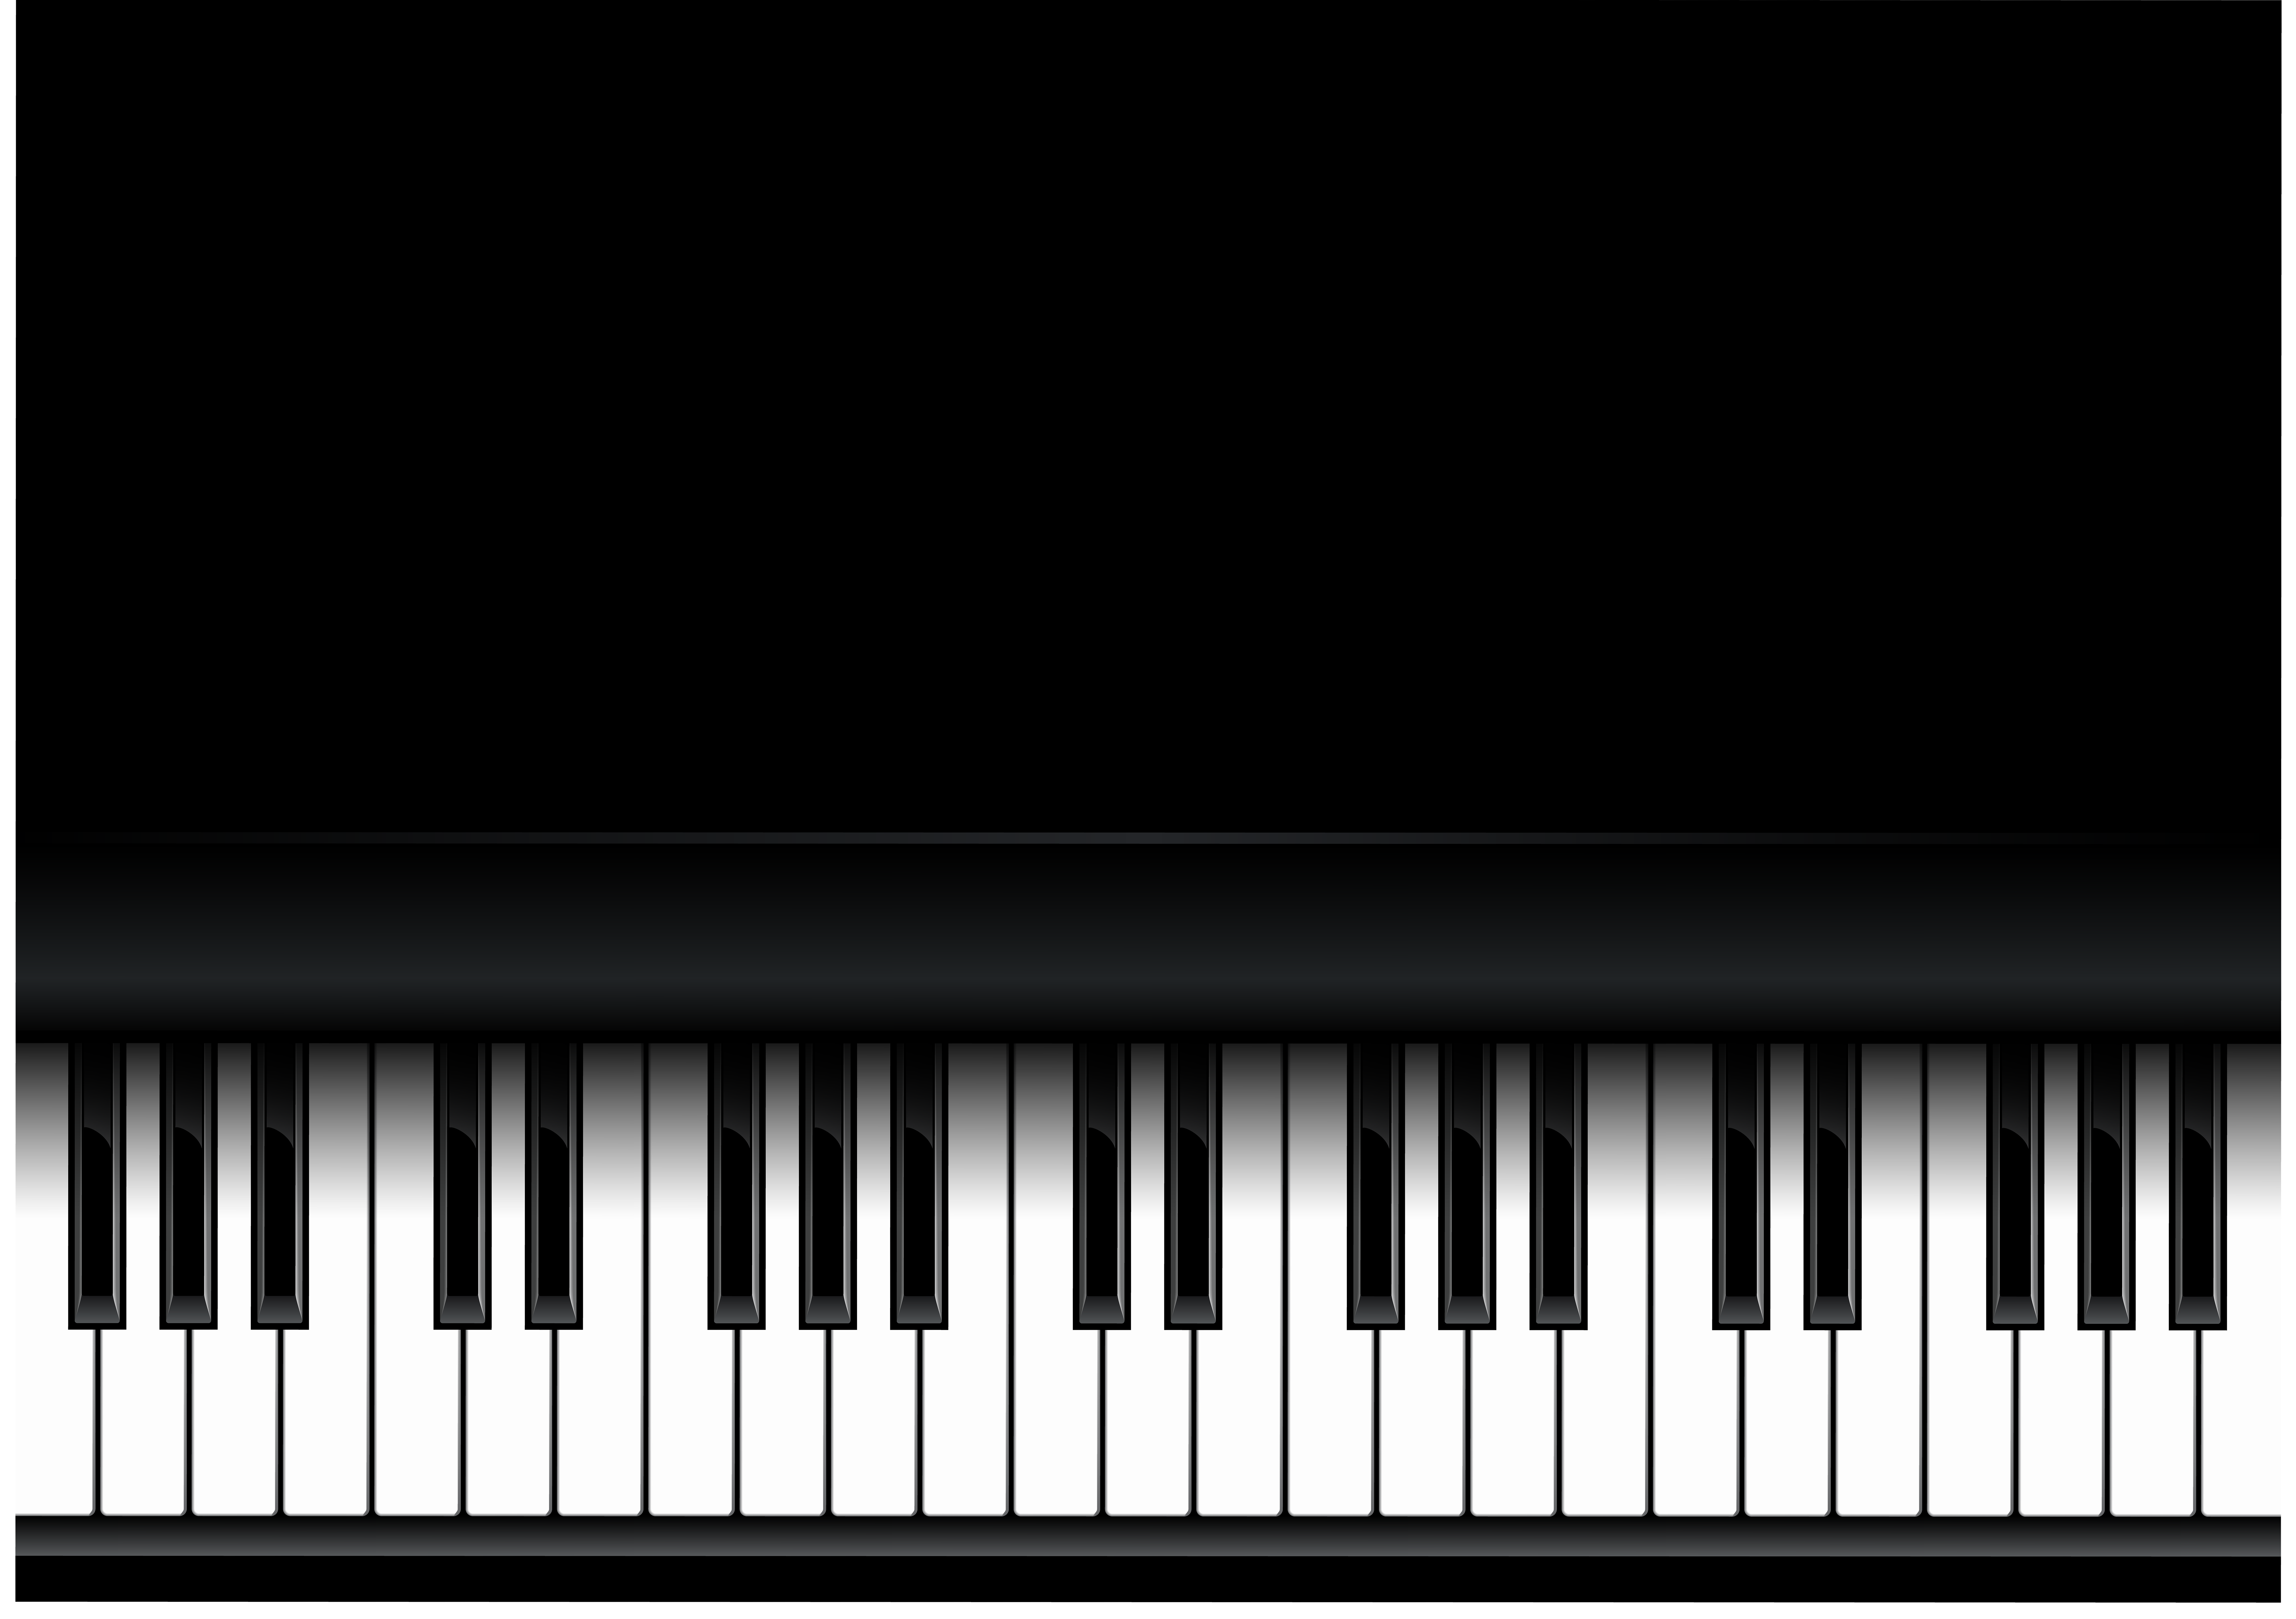 Png clip art image. Clipart piano high quality